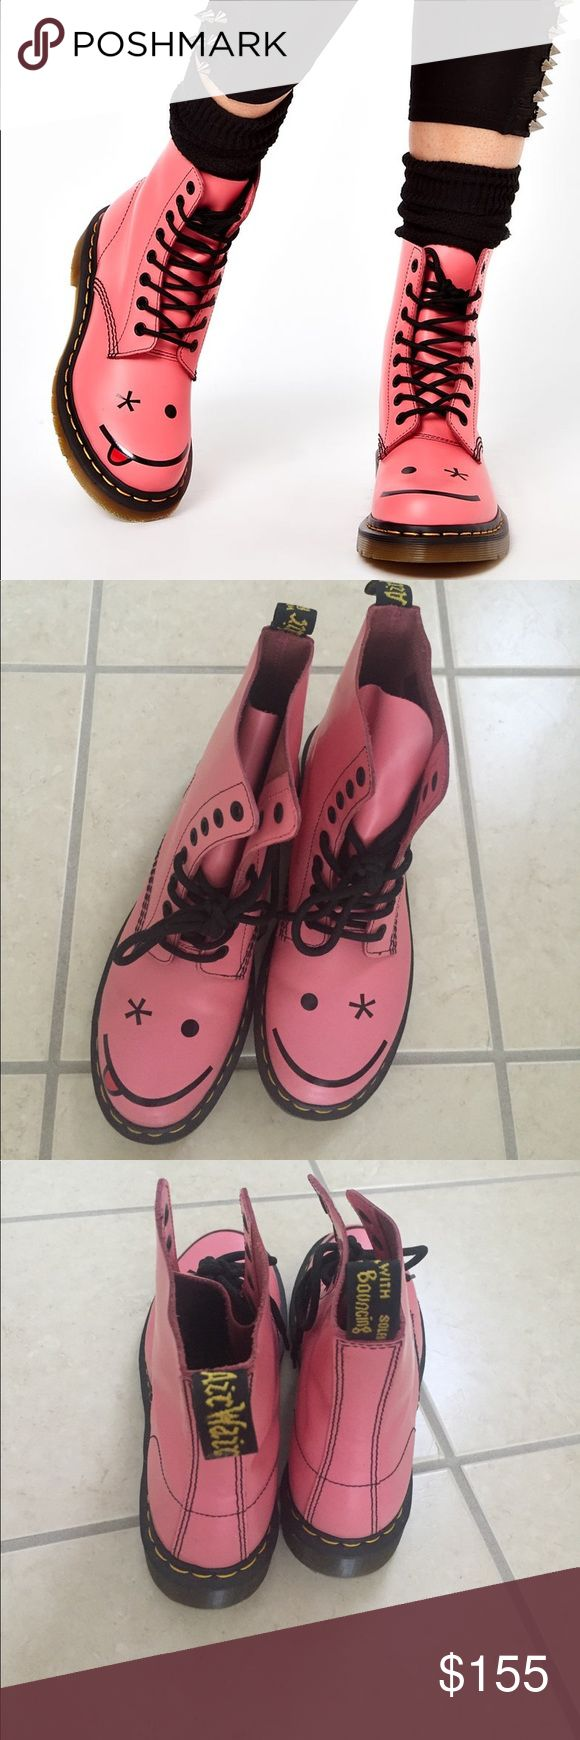 Revista 2 rodas.doc - New Dr Doc Martens Hincky Smiley Boots Acid Pink Brand New Never Worn